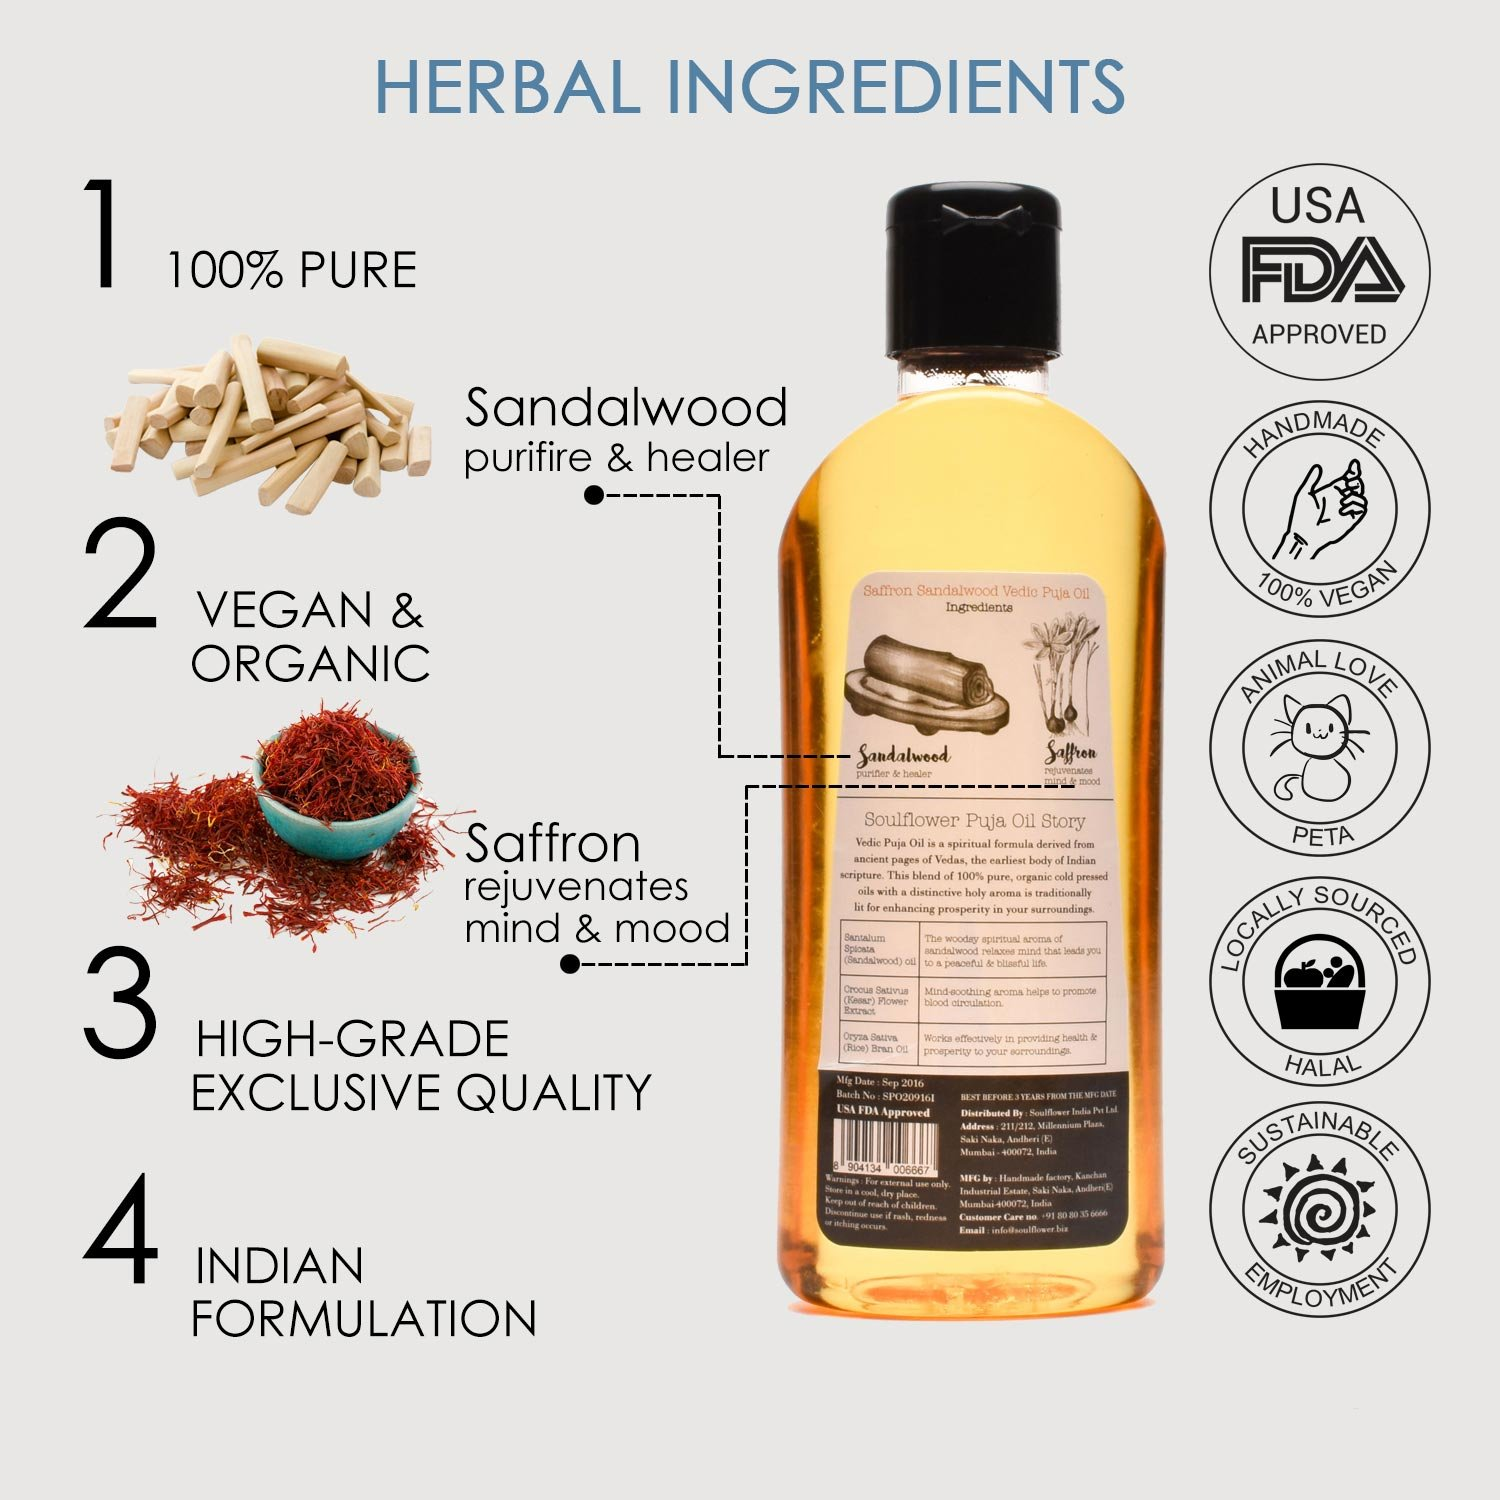 Saffron Sandalwood Vedic Puja Oil by Soulflower, 100% Pure and Natural  Undiluted Ayurvedic Formulation,USFDA approved, Pure Sacred & Mystique for